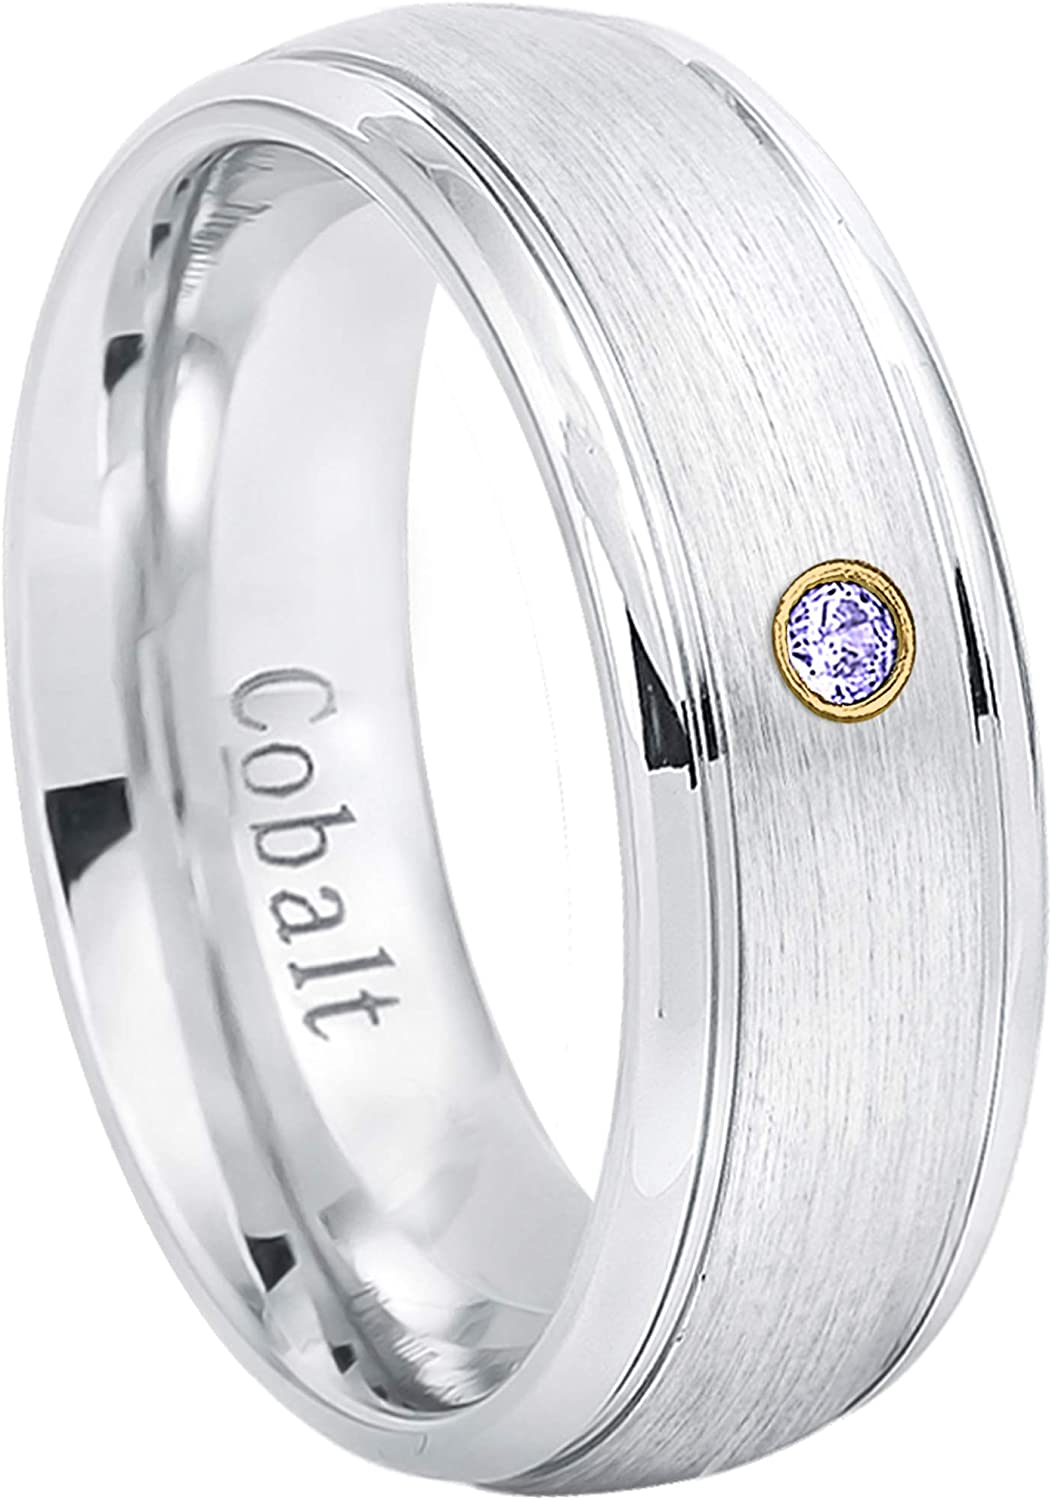 Jewelry Avalanche 8MM Comfort Fit Brushed with Grooved Edge Cobalt Chrome Wedding Band 0.07ct Tanzanite Cobalt Ring December Birthstone Ring